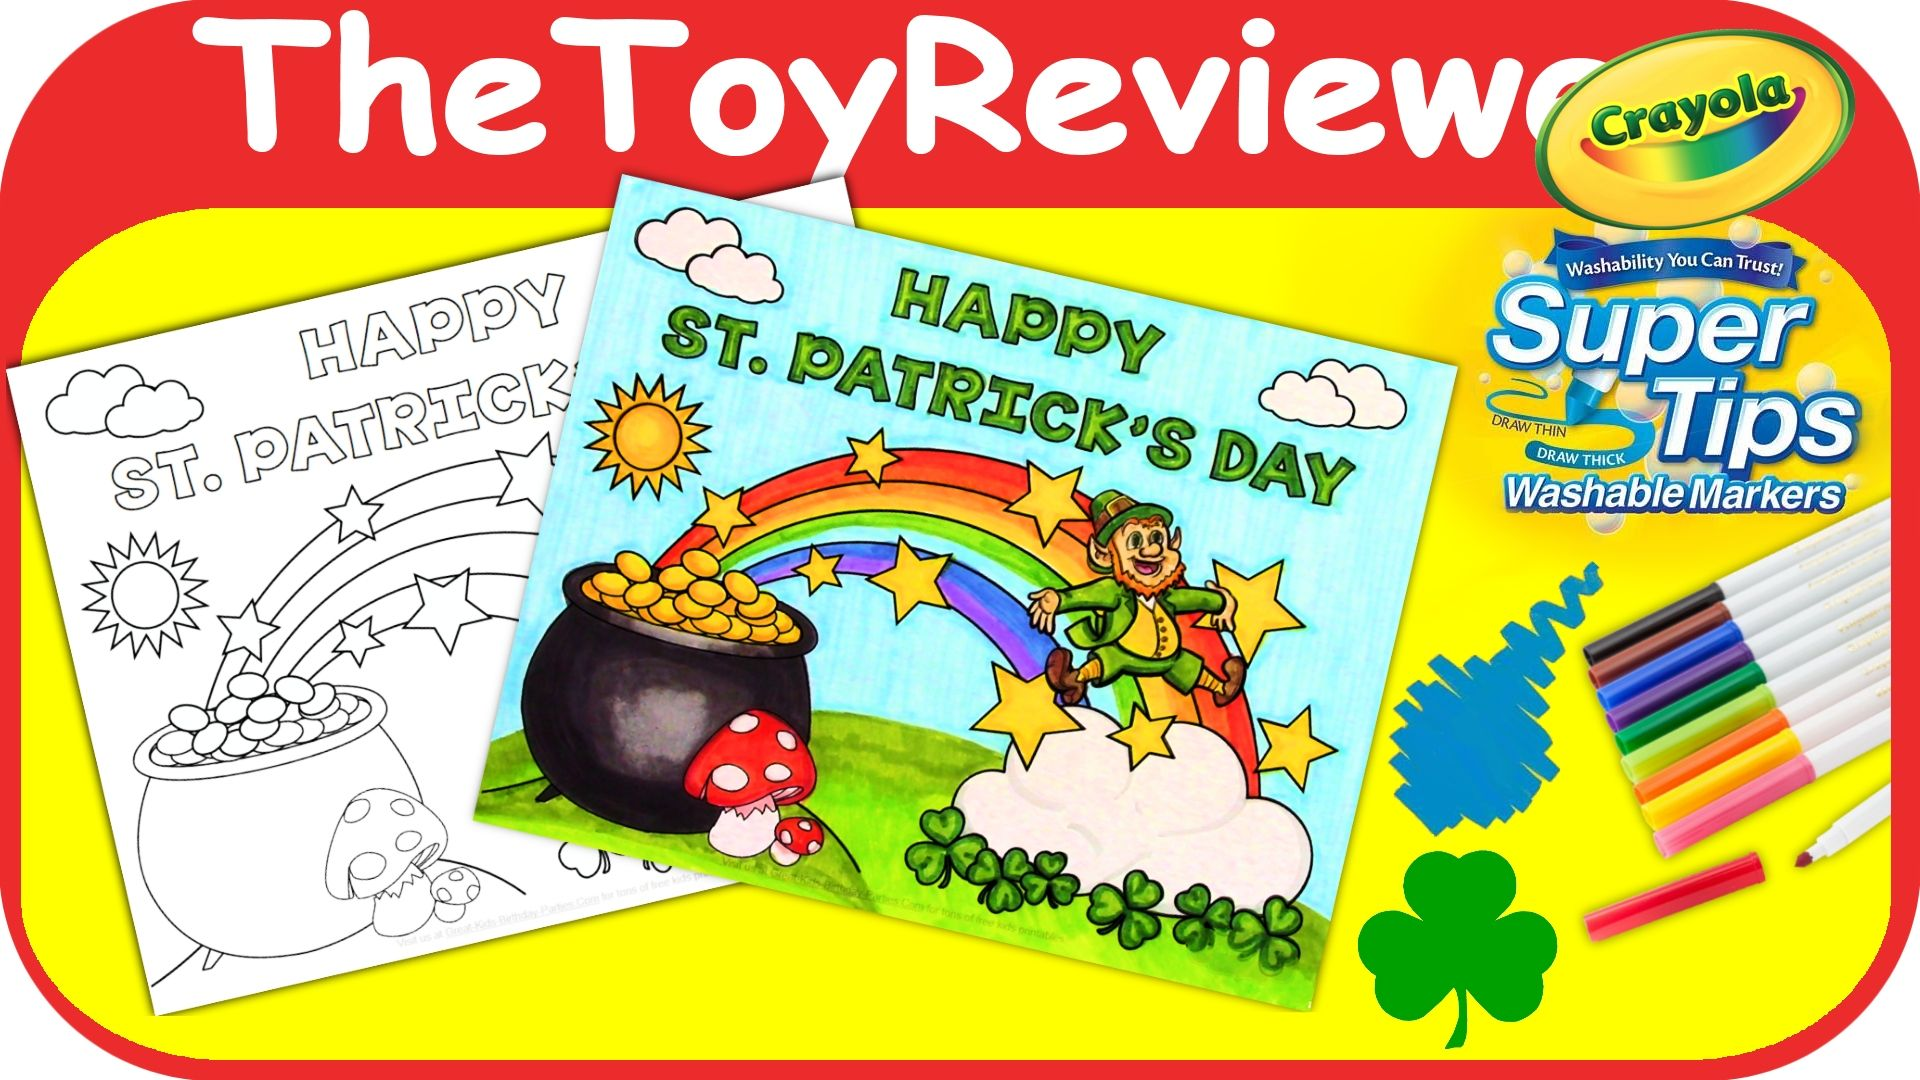 Pin By Thetoyreviewer On Thetoyreviewer Videos Coloring Pages